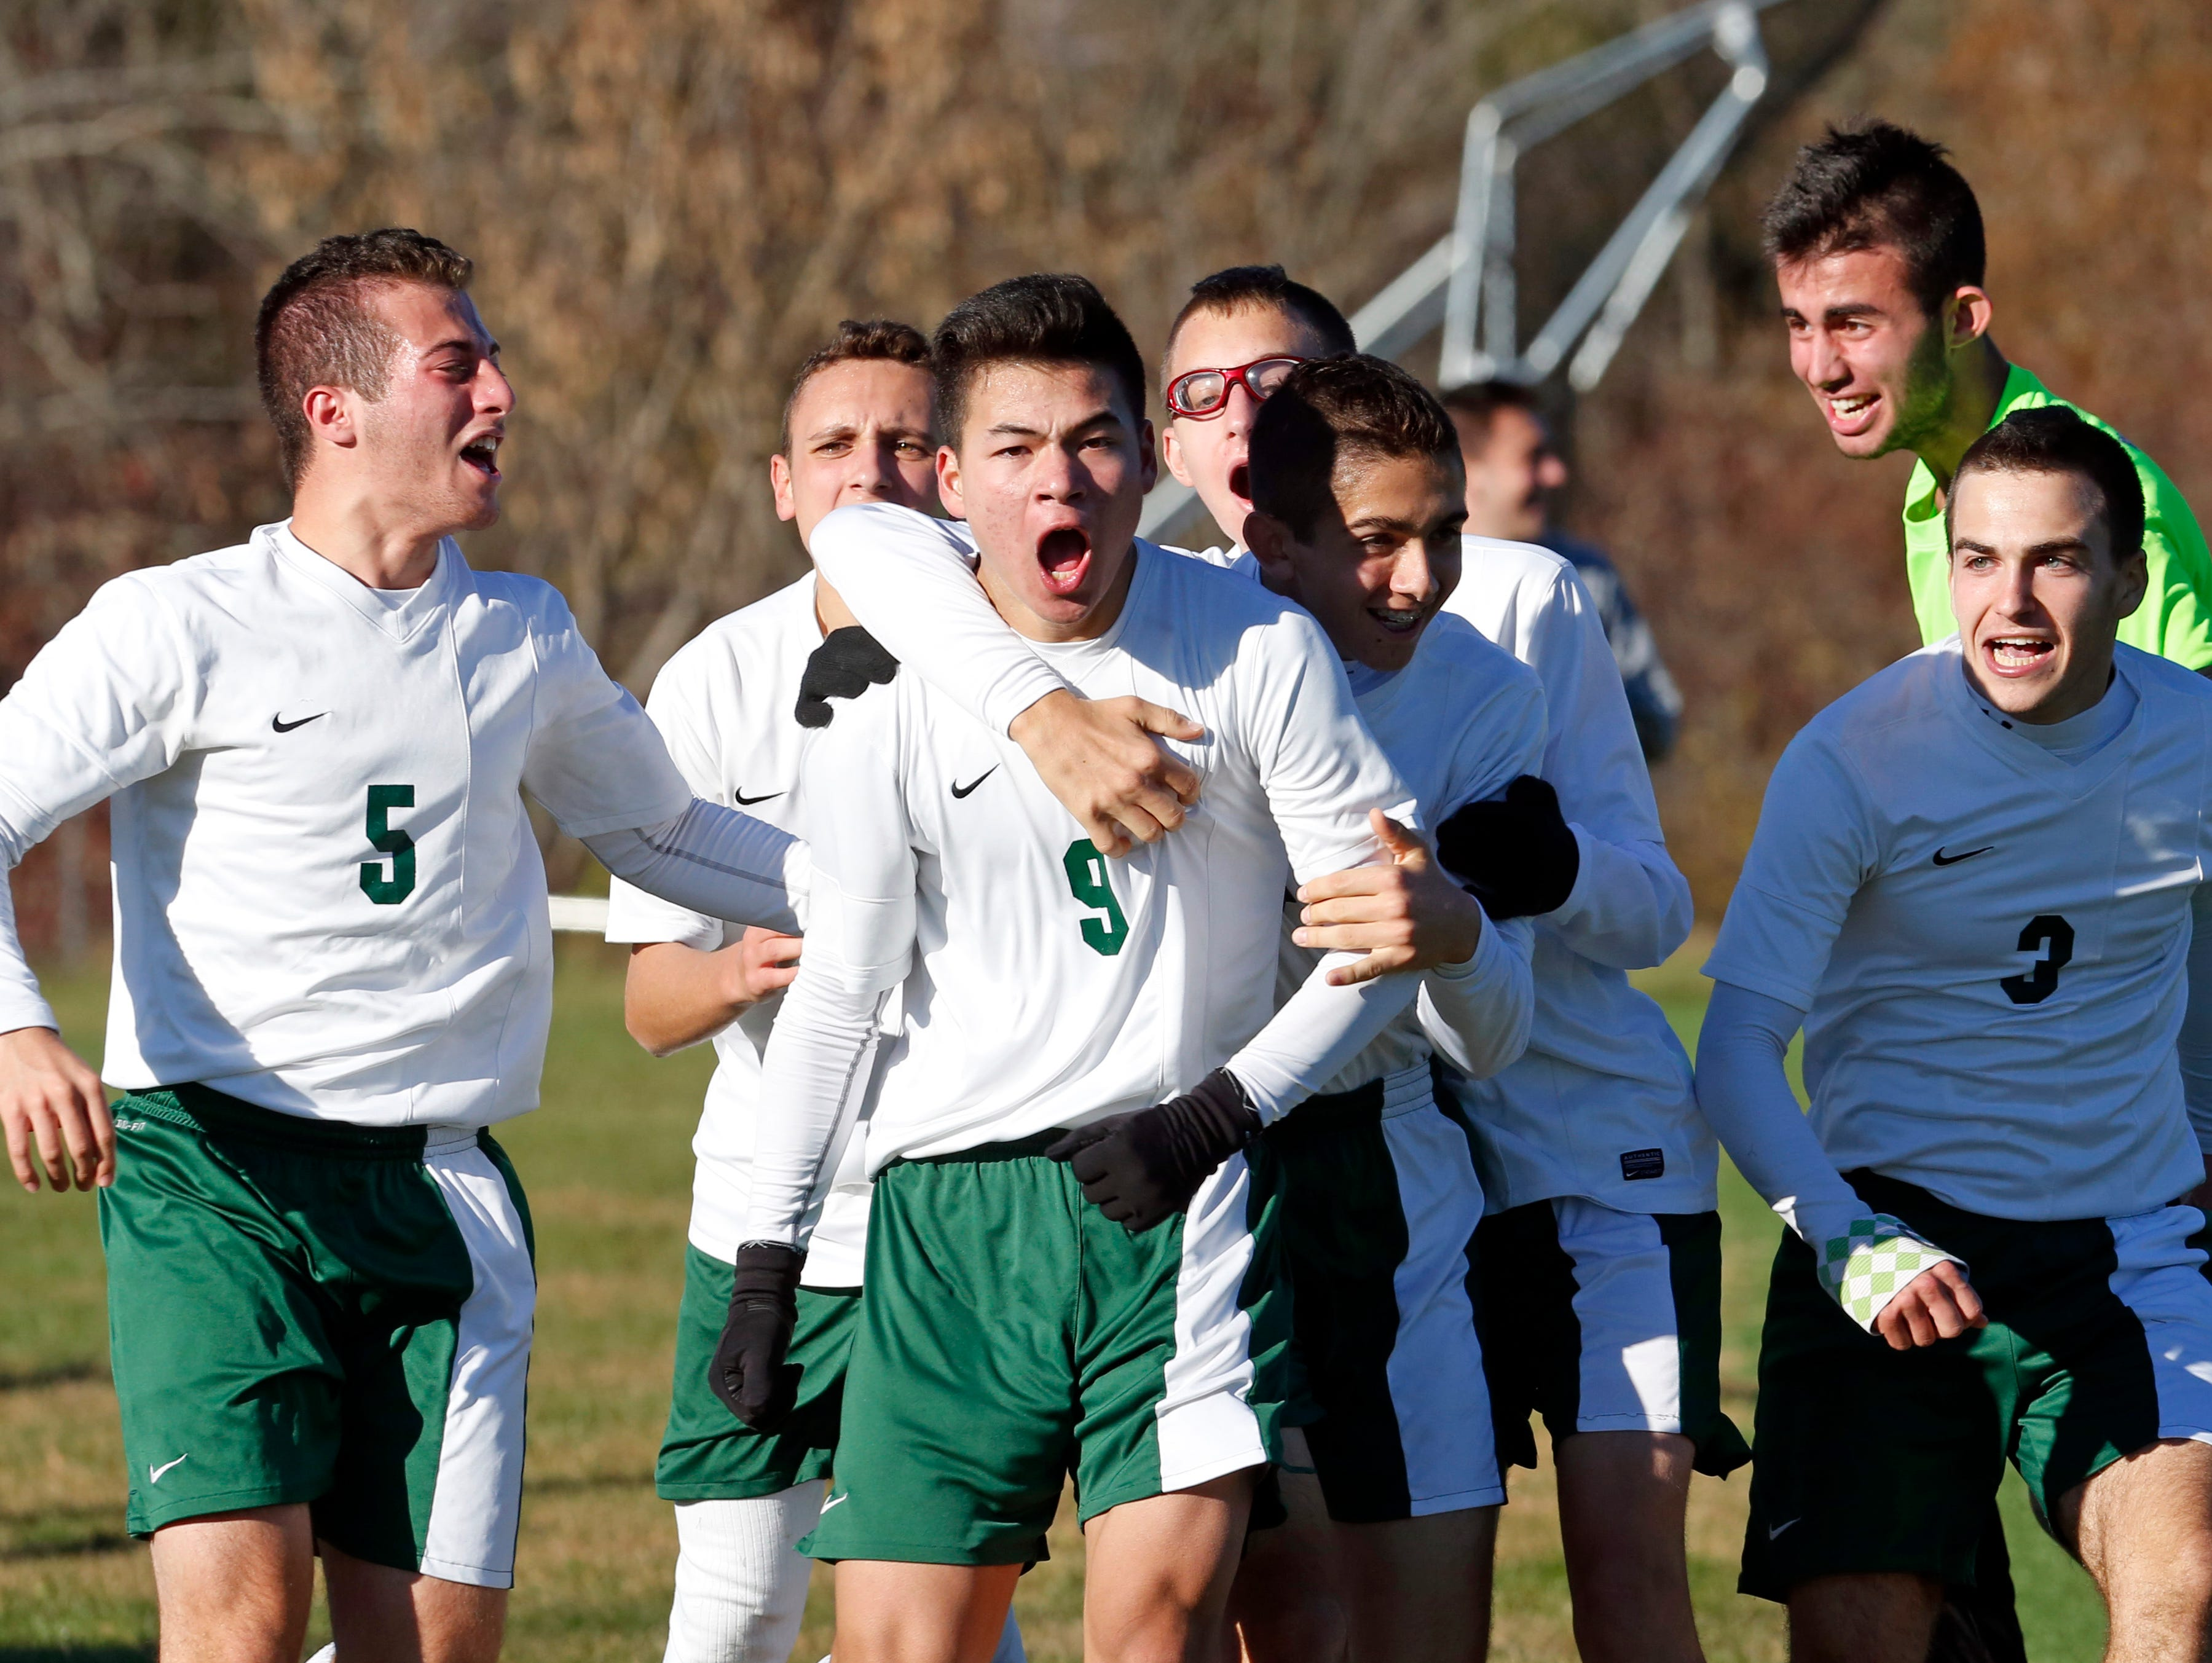 Solomon Schechter celebrates their 2-1 victory in the Class C boys soccer final after Miles Ogihara, center, scored the winning goal in overtime against Hamilton, Oct. 30, 2015 at Arlington High School in Lagrangeville.